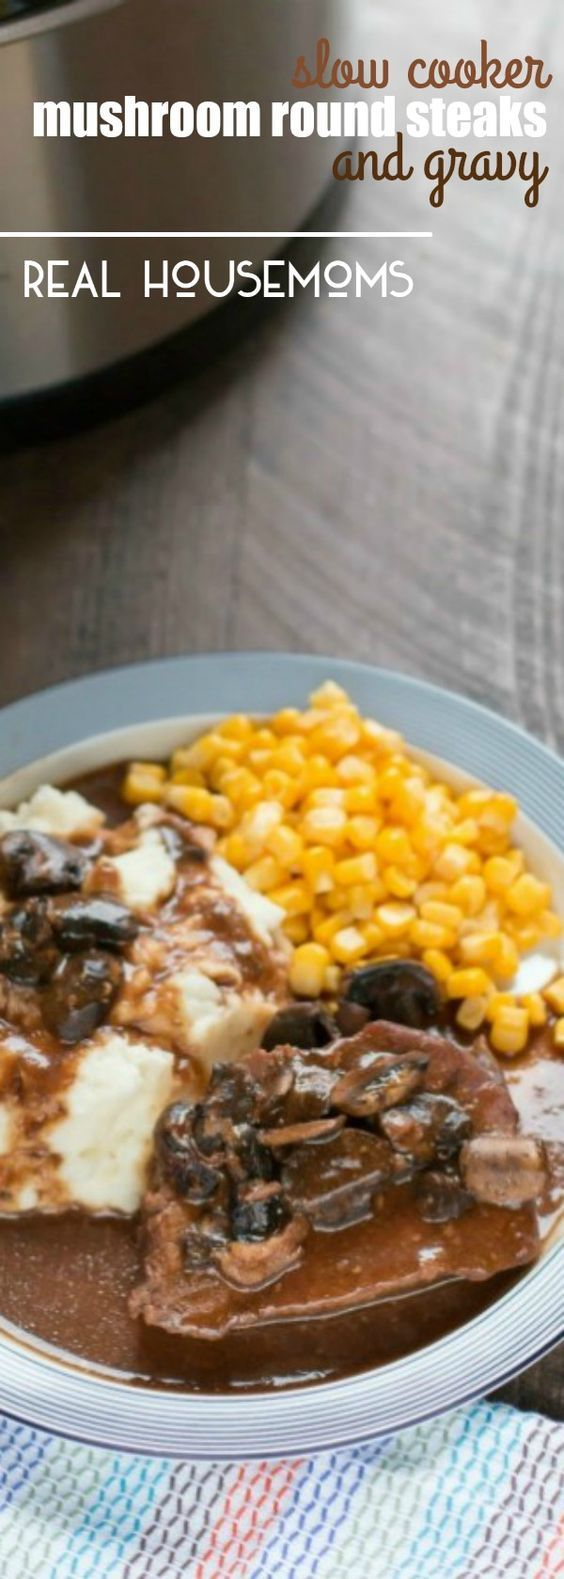 Try this SLOW COOKER MUSHROOM ROUND STEAKS WITH GRAVY for dinner this week. An inexpensive cut of meat made delicious with help from your slow cooker!